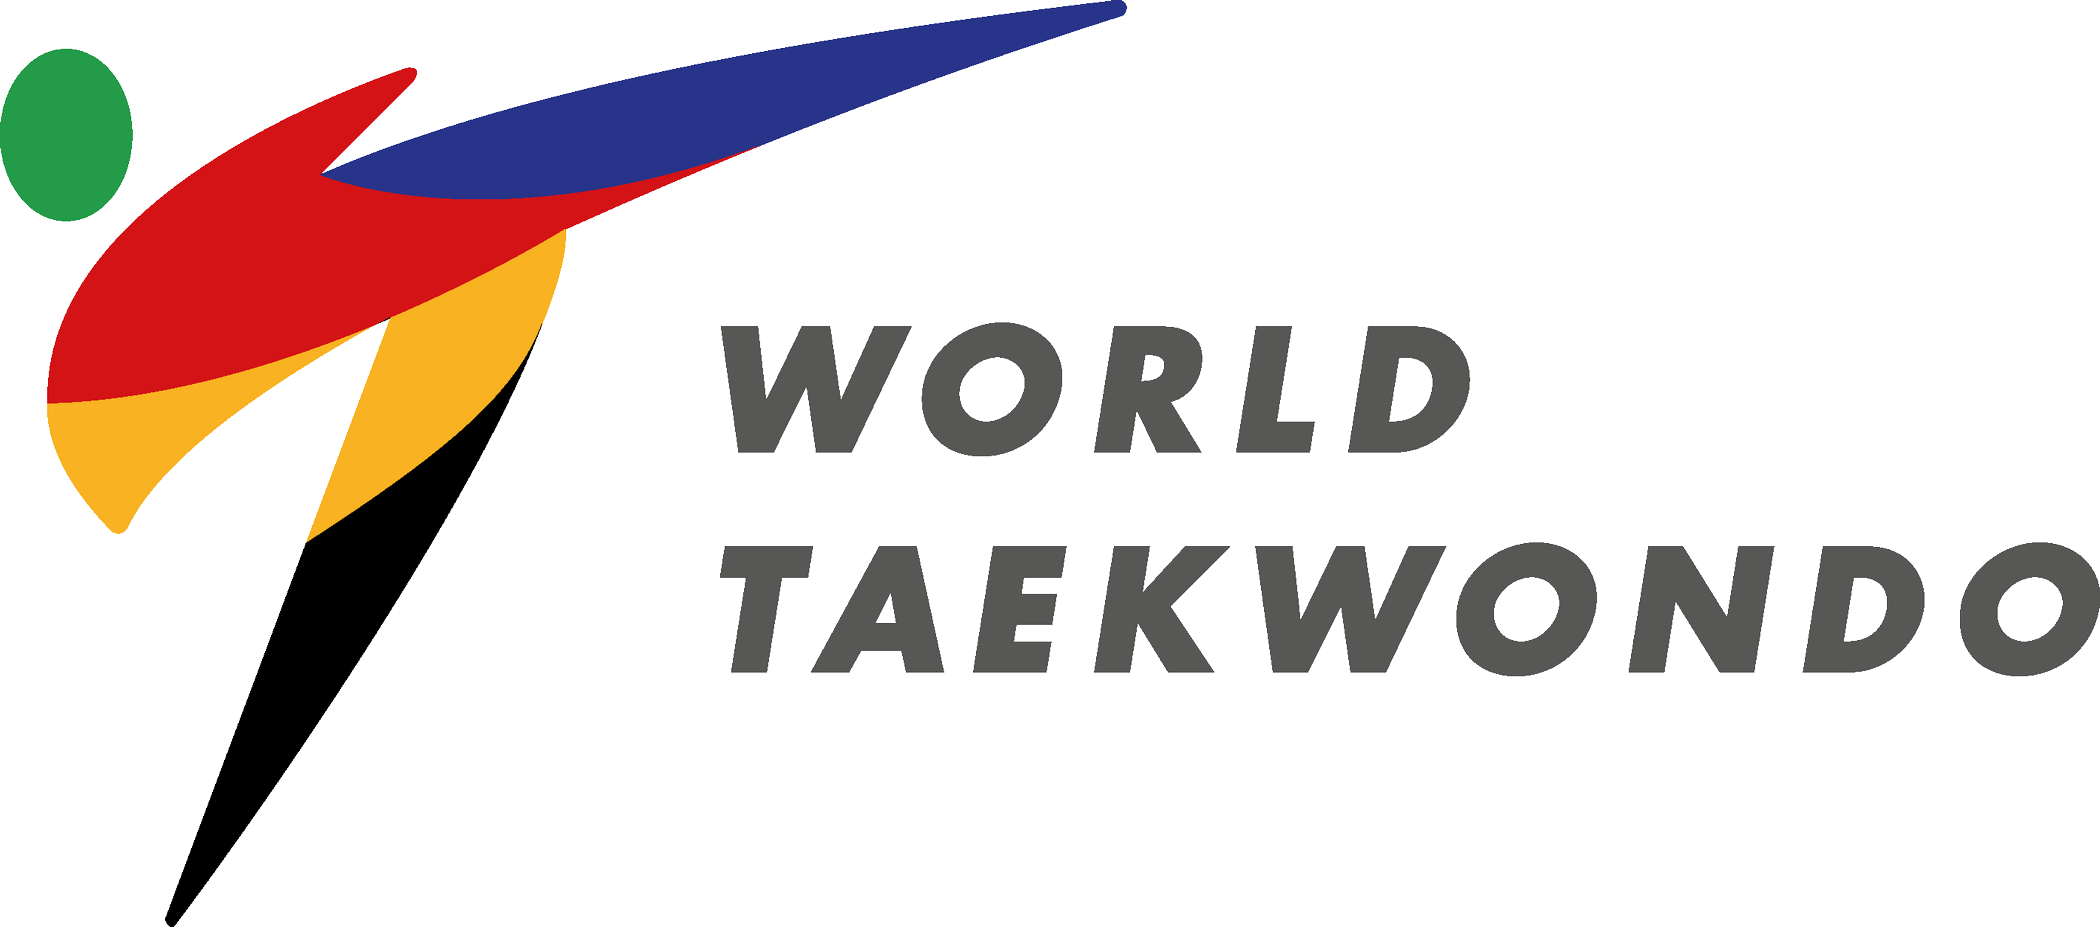 World Taekwondo Federation WTF Logo logoeps.net